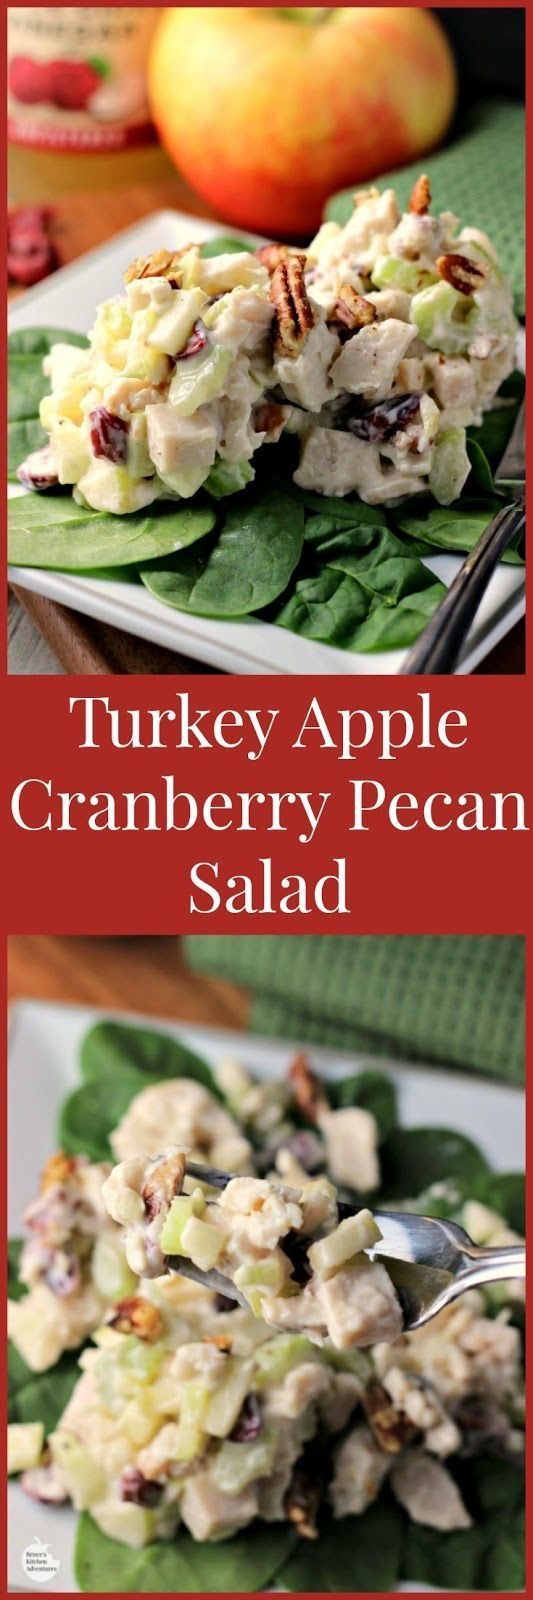 Turkey Apple Cranberry Pecan Salad. An easy healthy recipe for turkey salad. Makes a great lunch or dinner. Perfect way to re-purpose holiday leftovers!